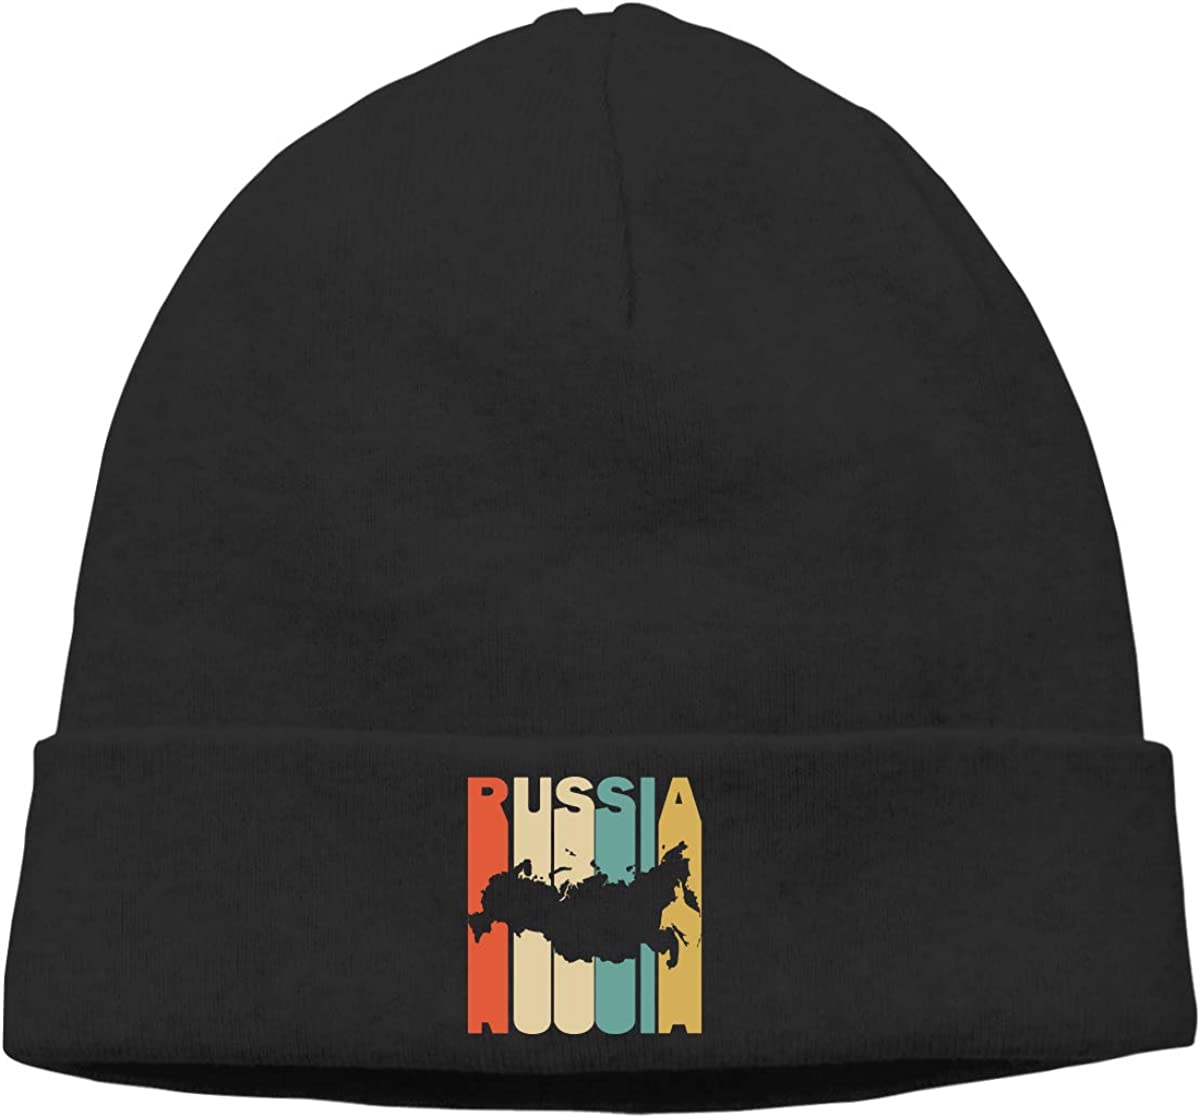 Unisex Knitting Cap Daily Retro Style Russia Silhouette Ski Hat for Mens Womens